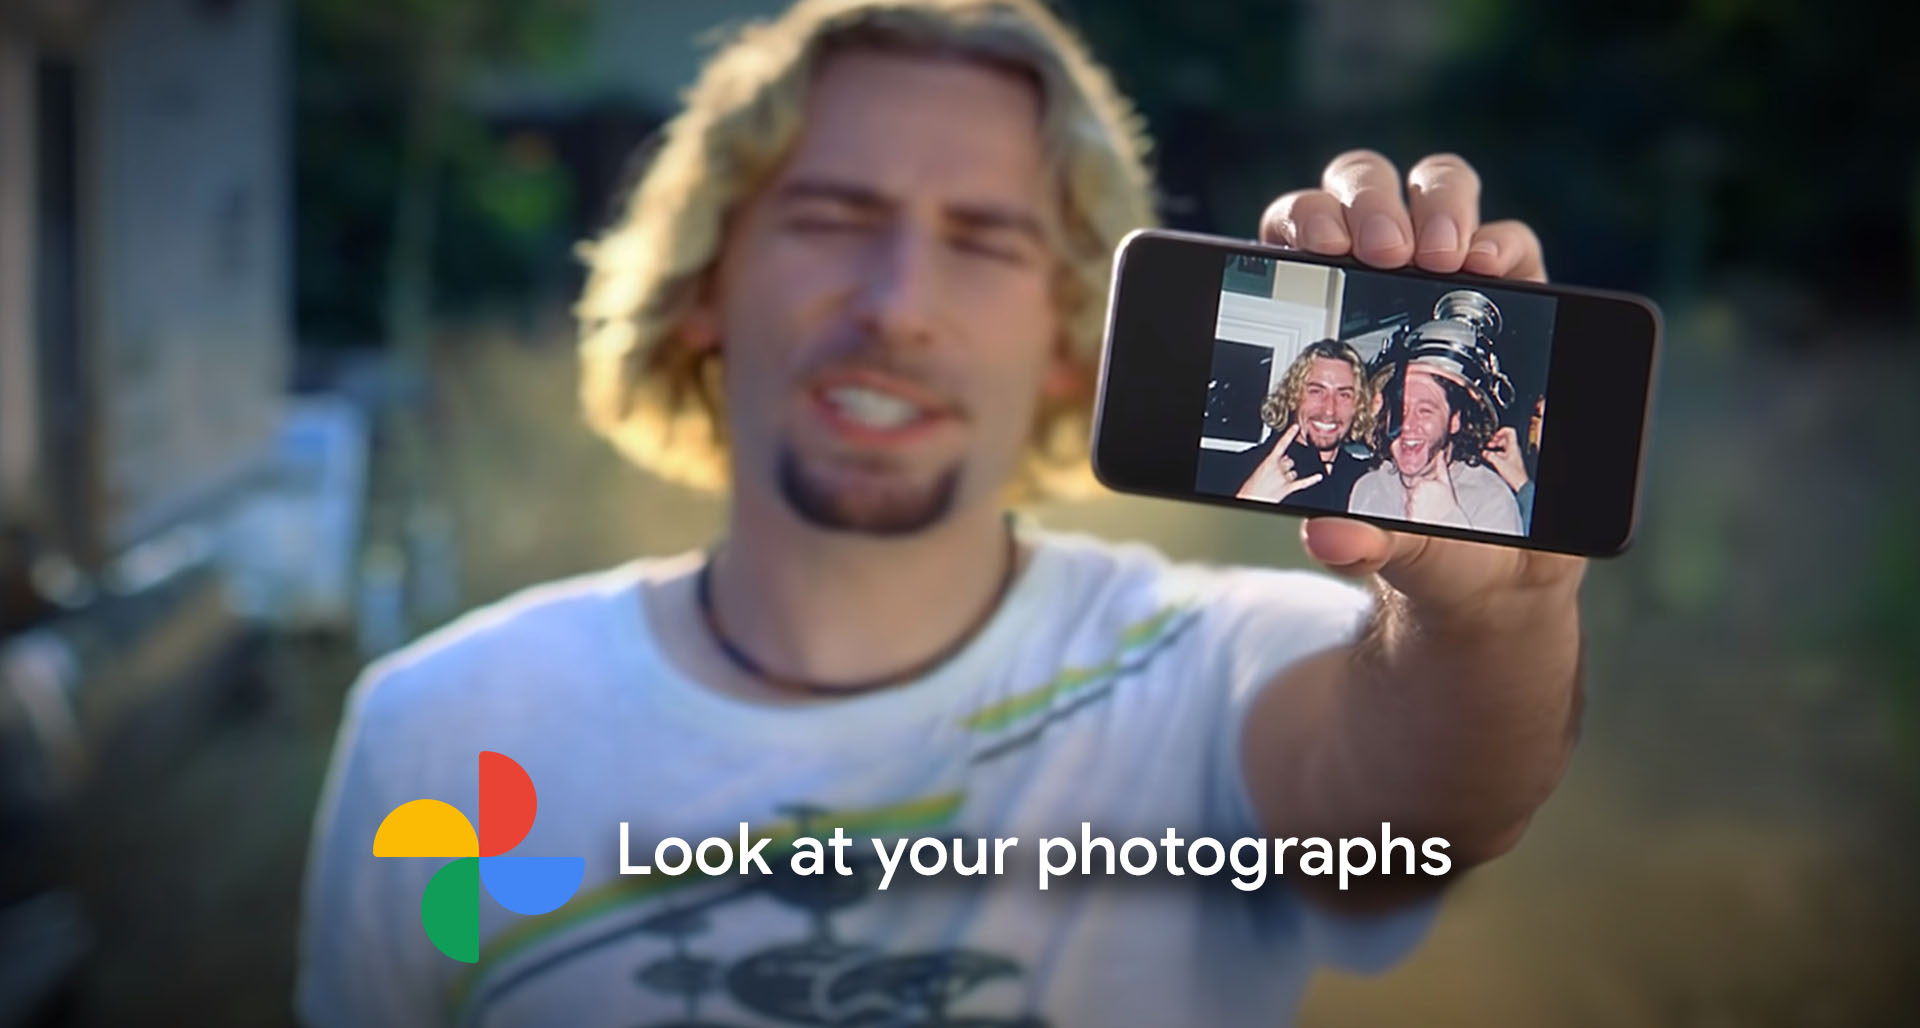 Google Photos lets you have your Nickelback, but not your quarter back